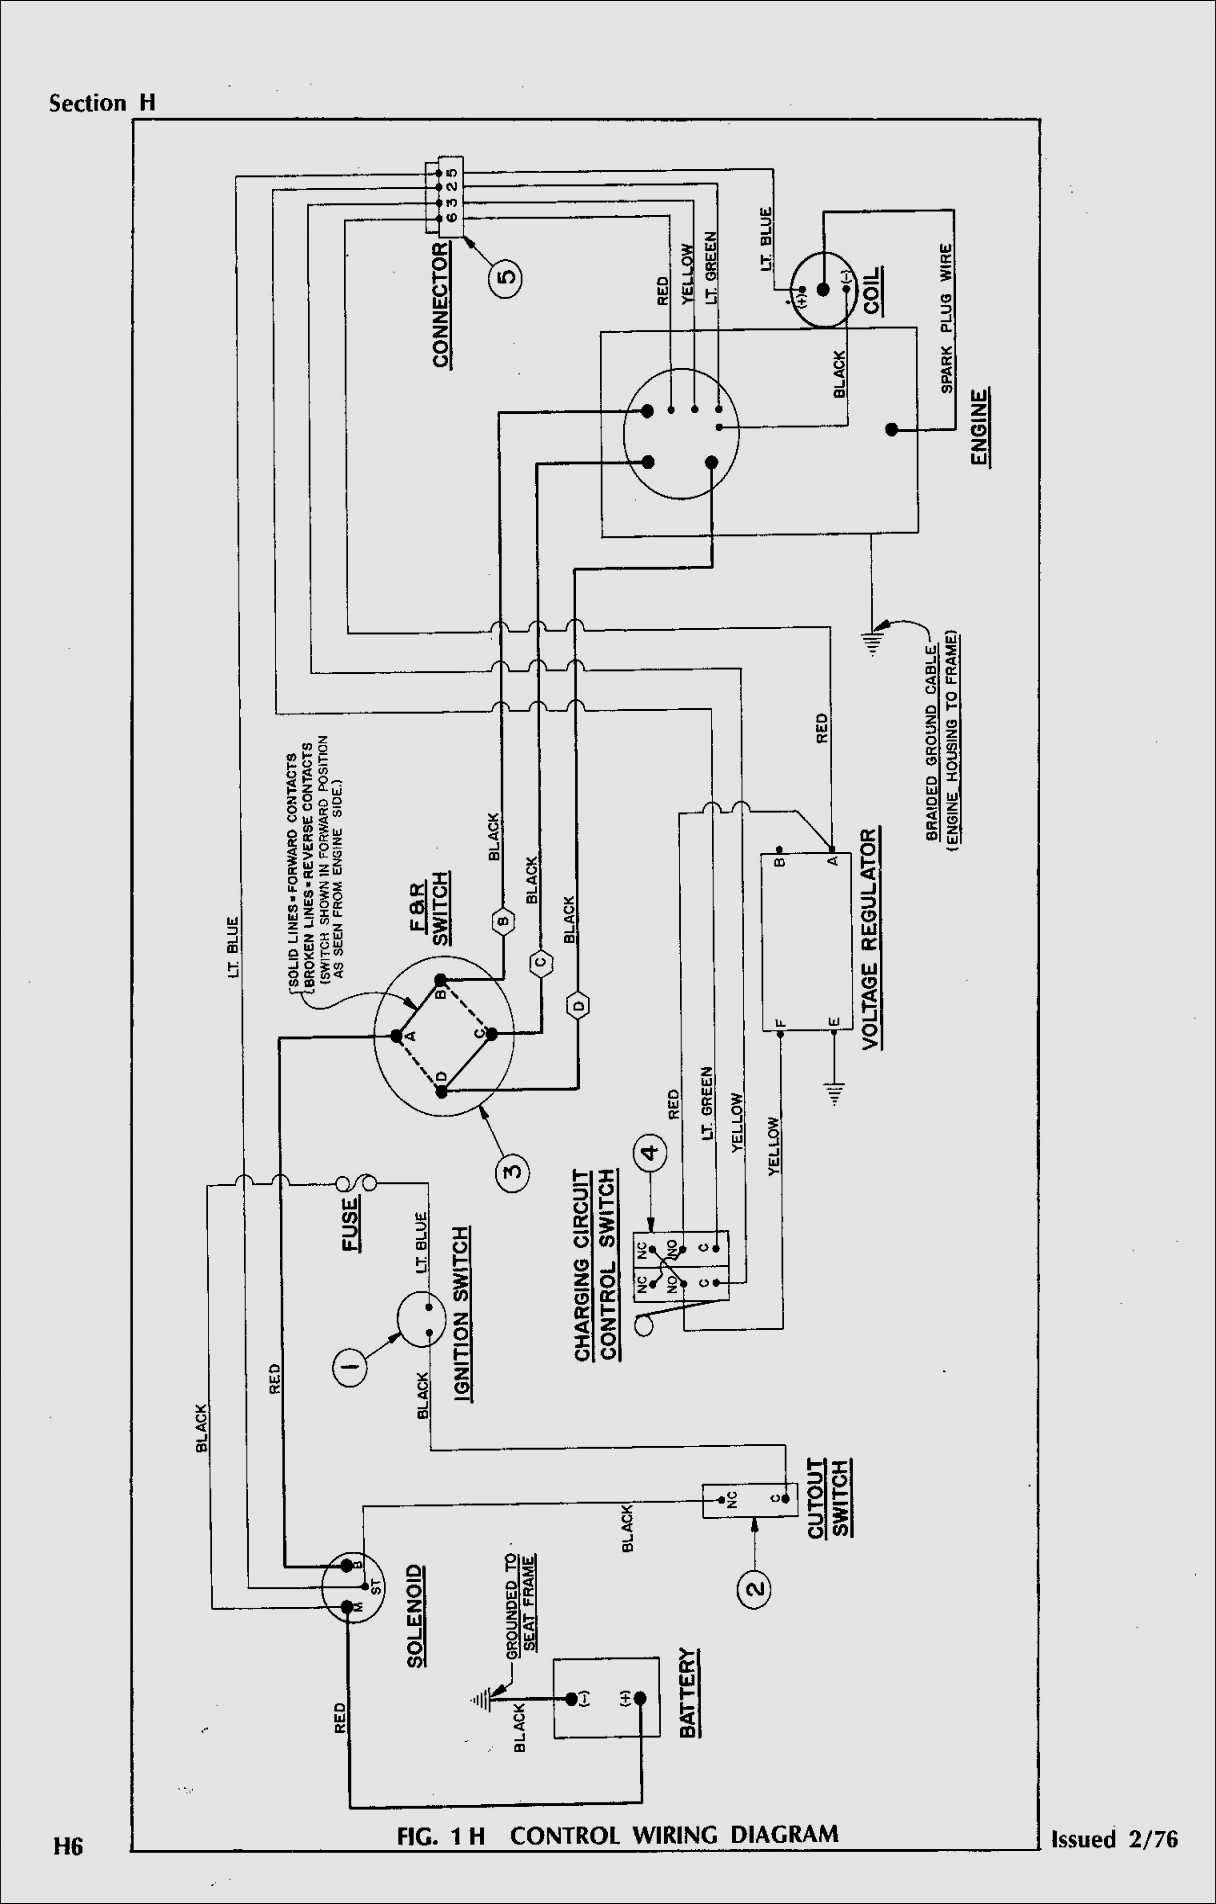 Unique Wiring Diagram For Extra Car Battery Diagramsample